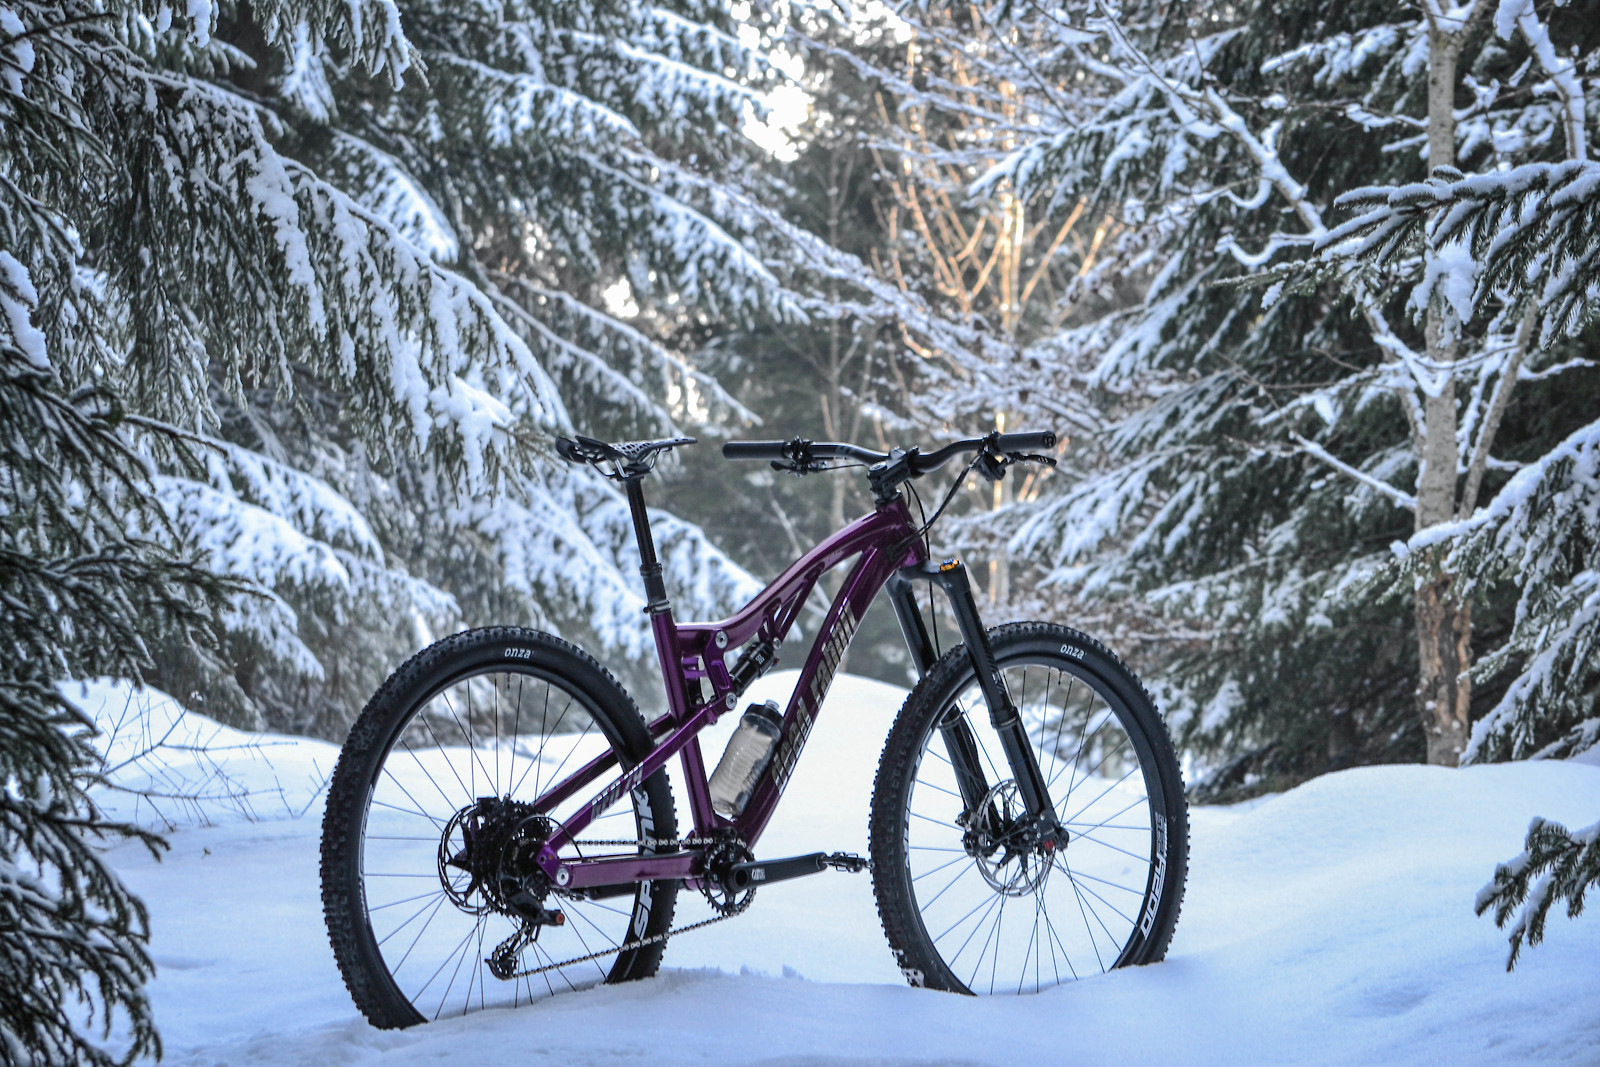 Dead Rabbit Geo29 - 2019 Vital Bike of the Day Collection - Mountain Biking Pictures - Vital MTB